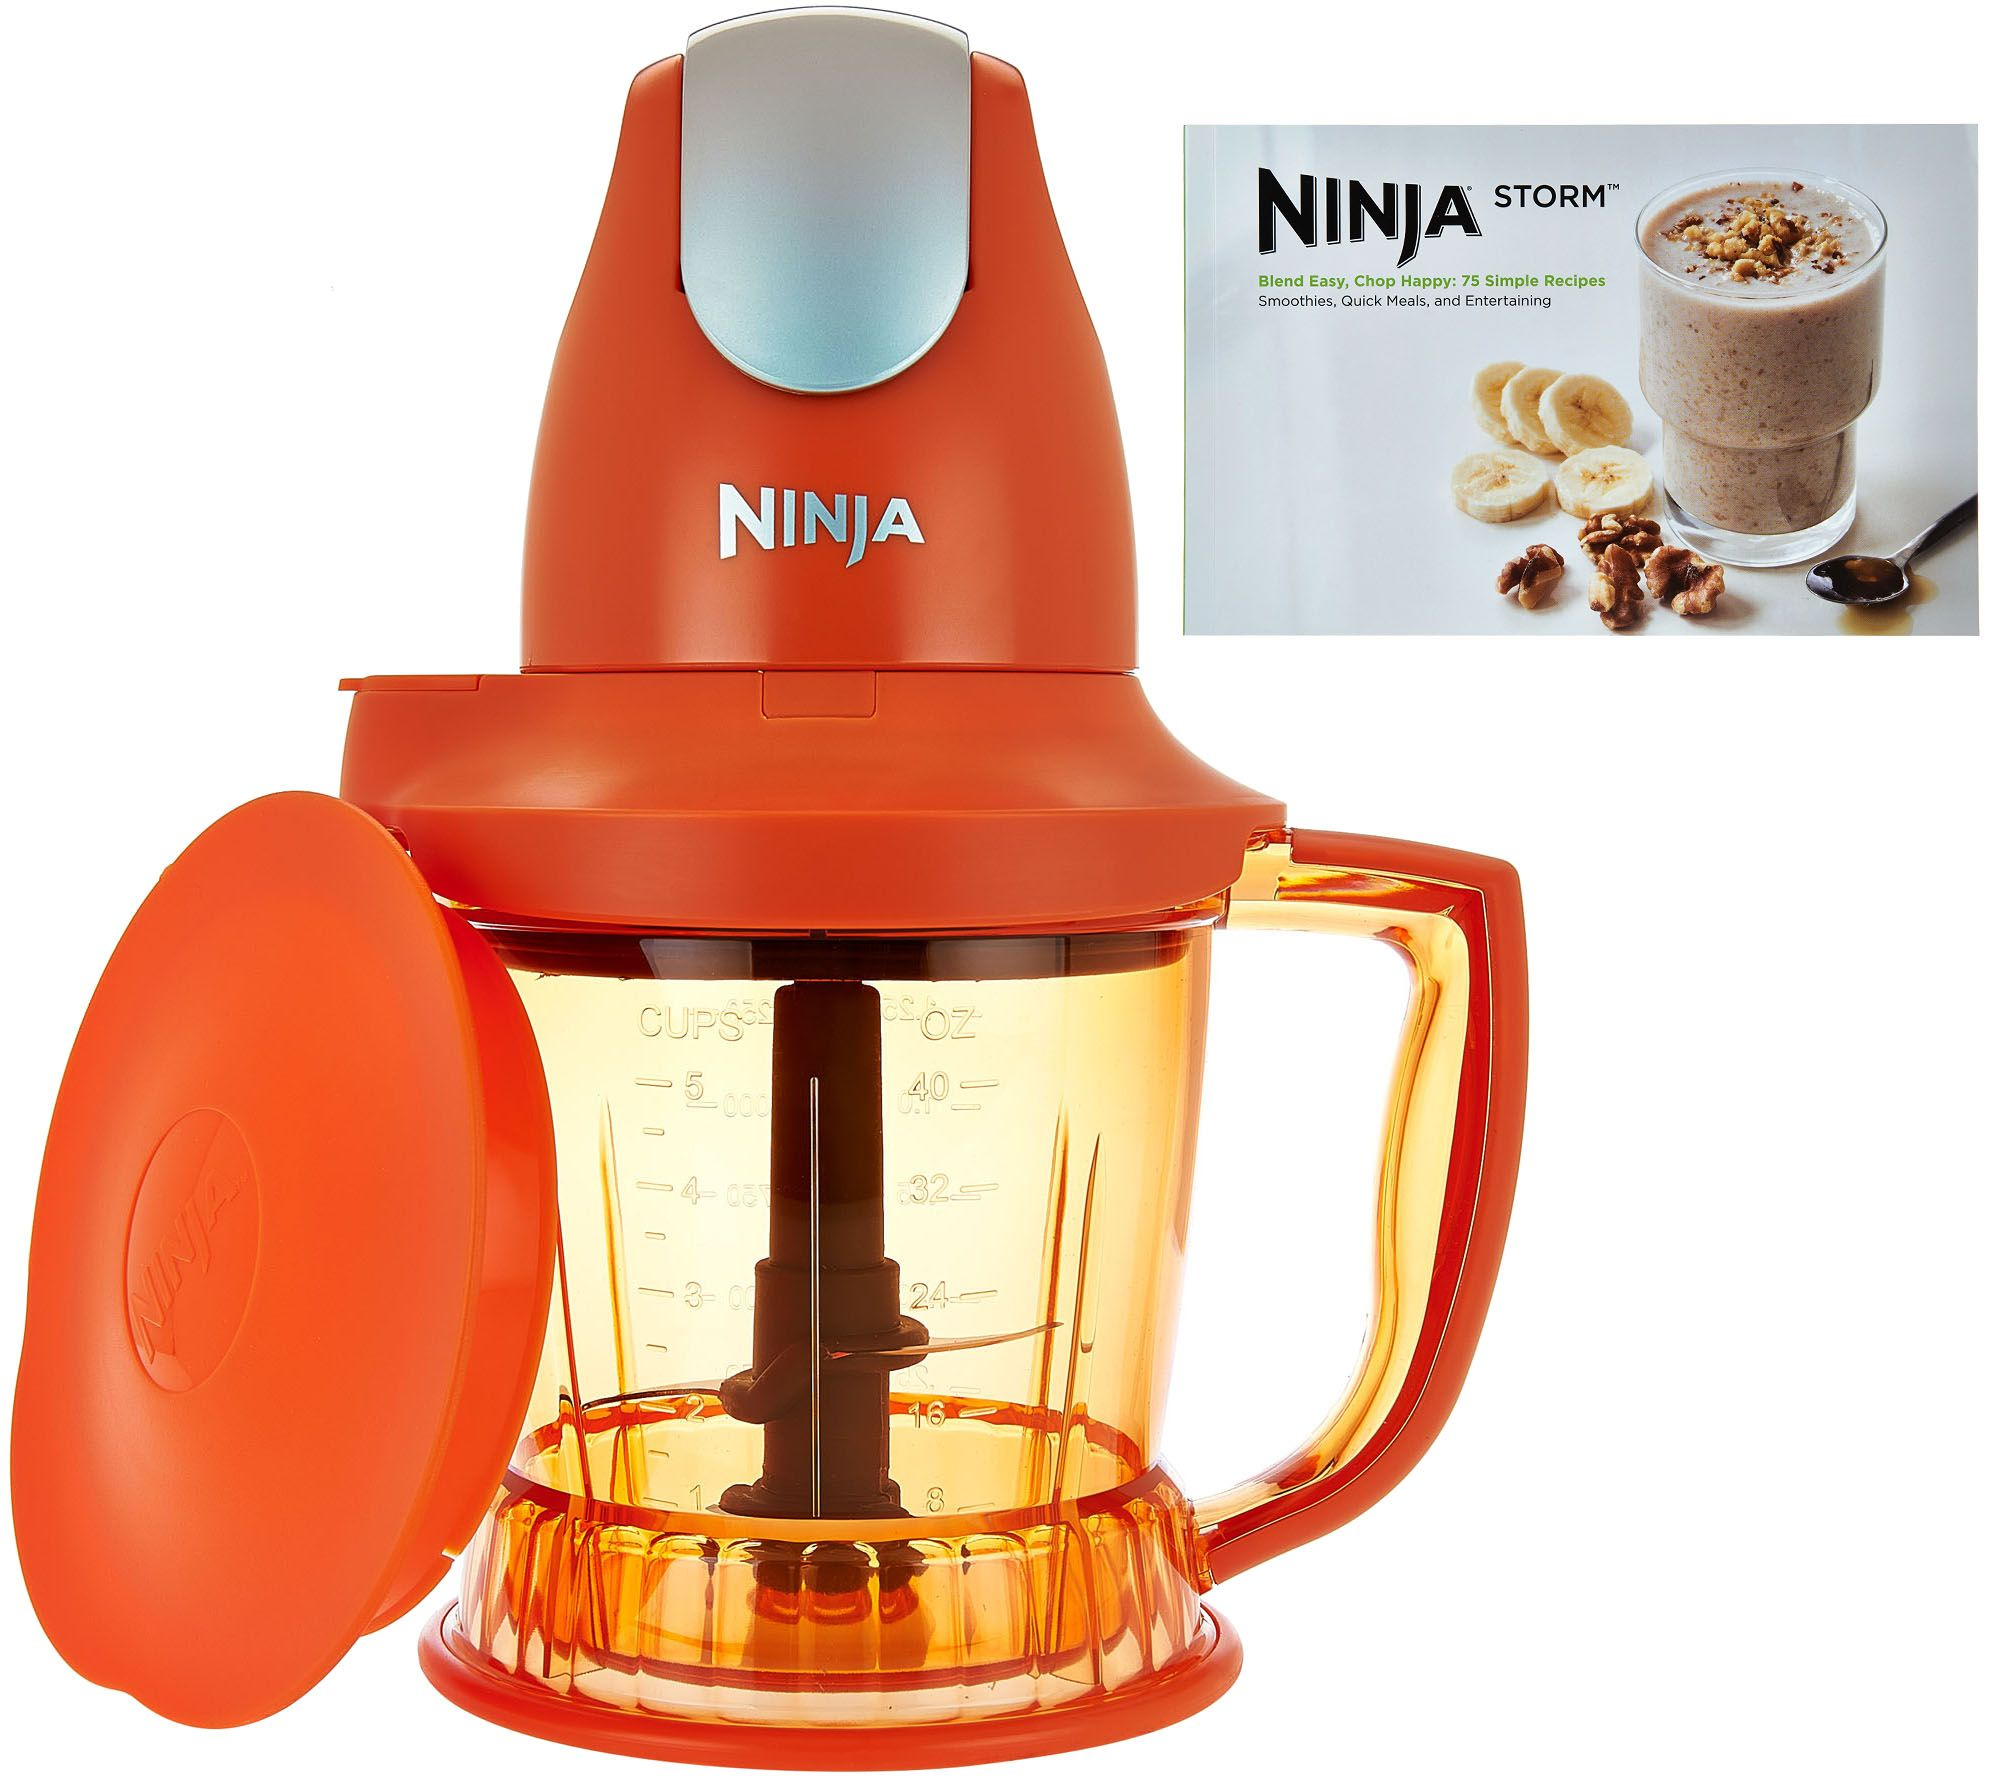 Ninja Storm Designer Series 450W 40 oz. Food & Drink Maker w/Recipes —  QVC.com